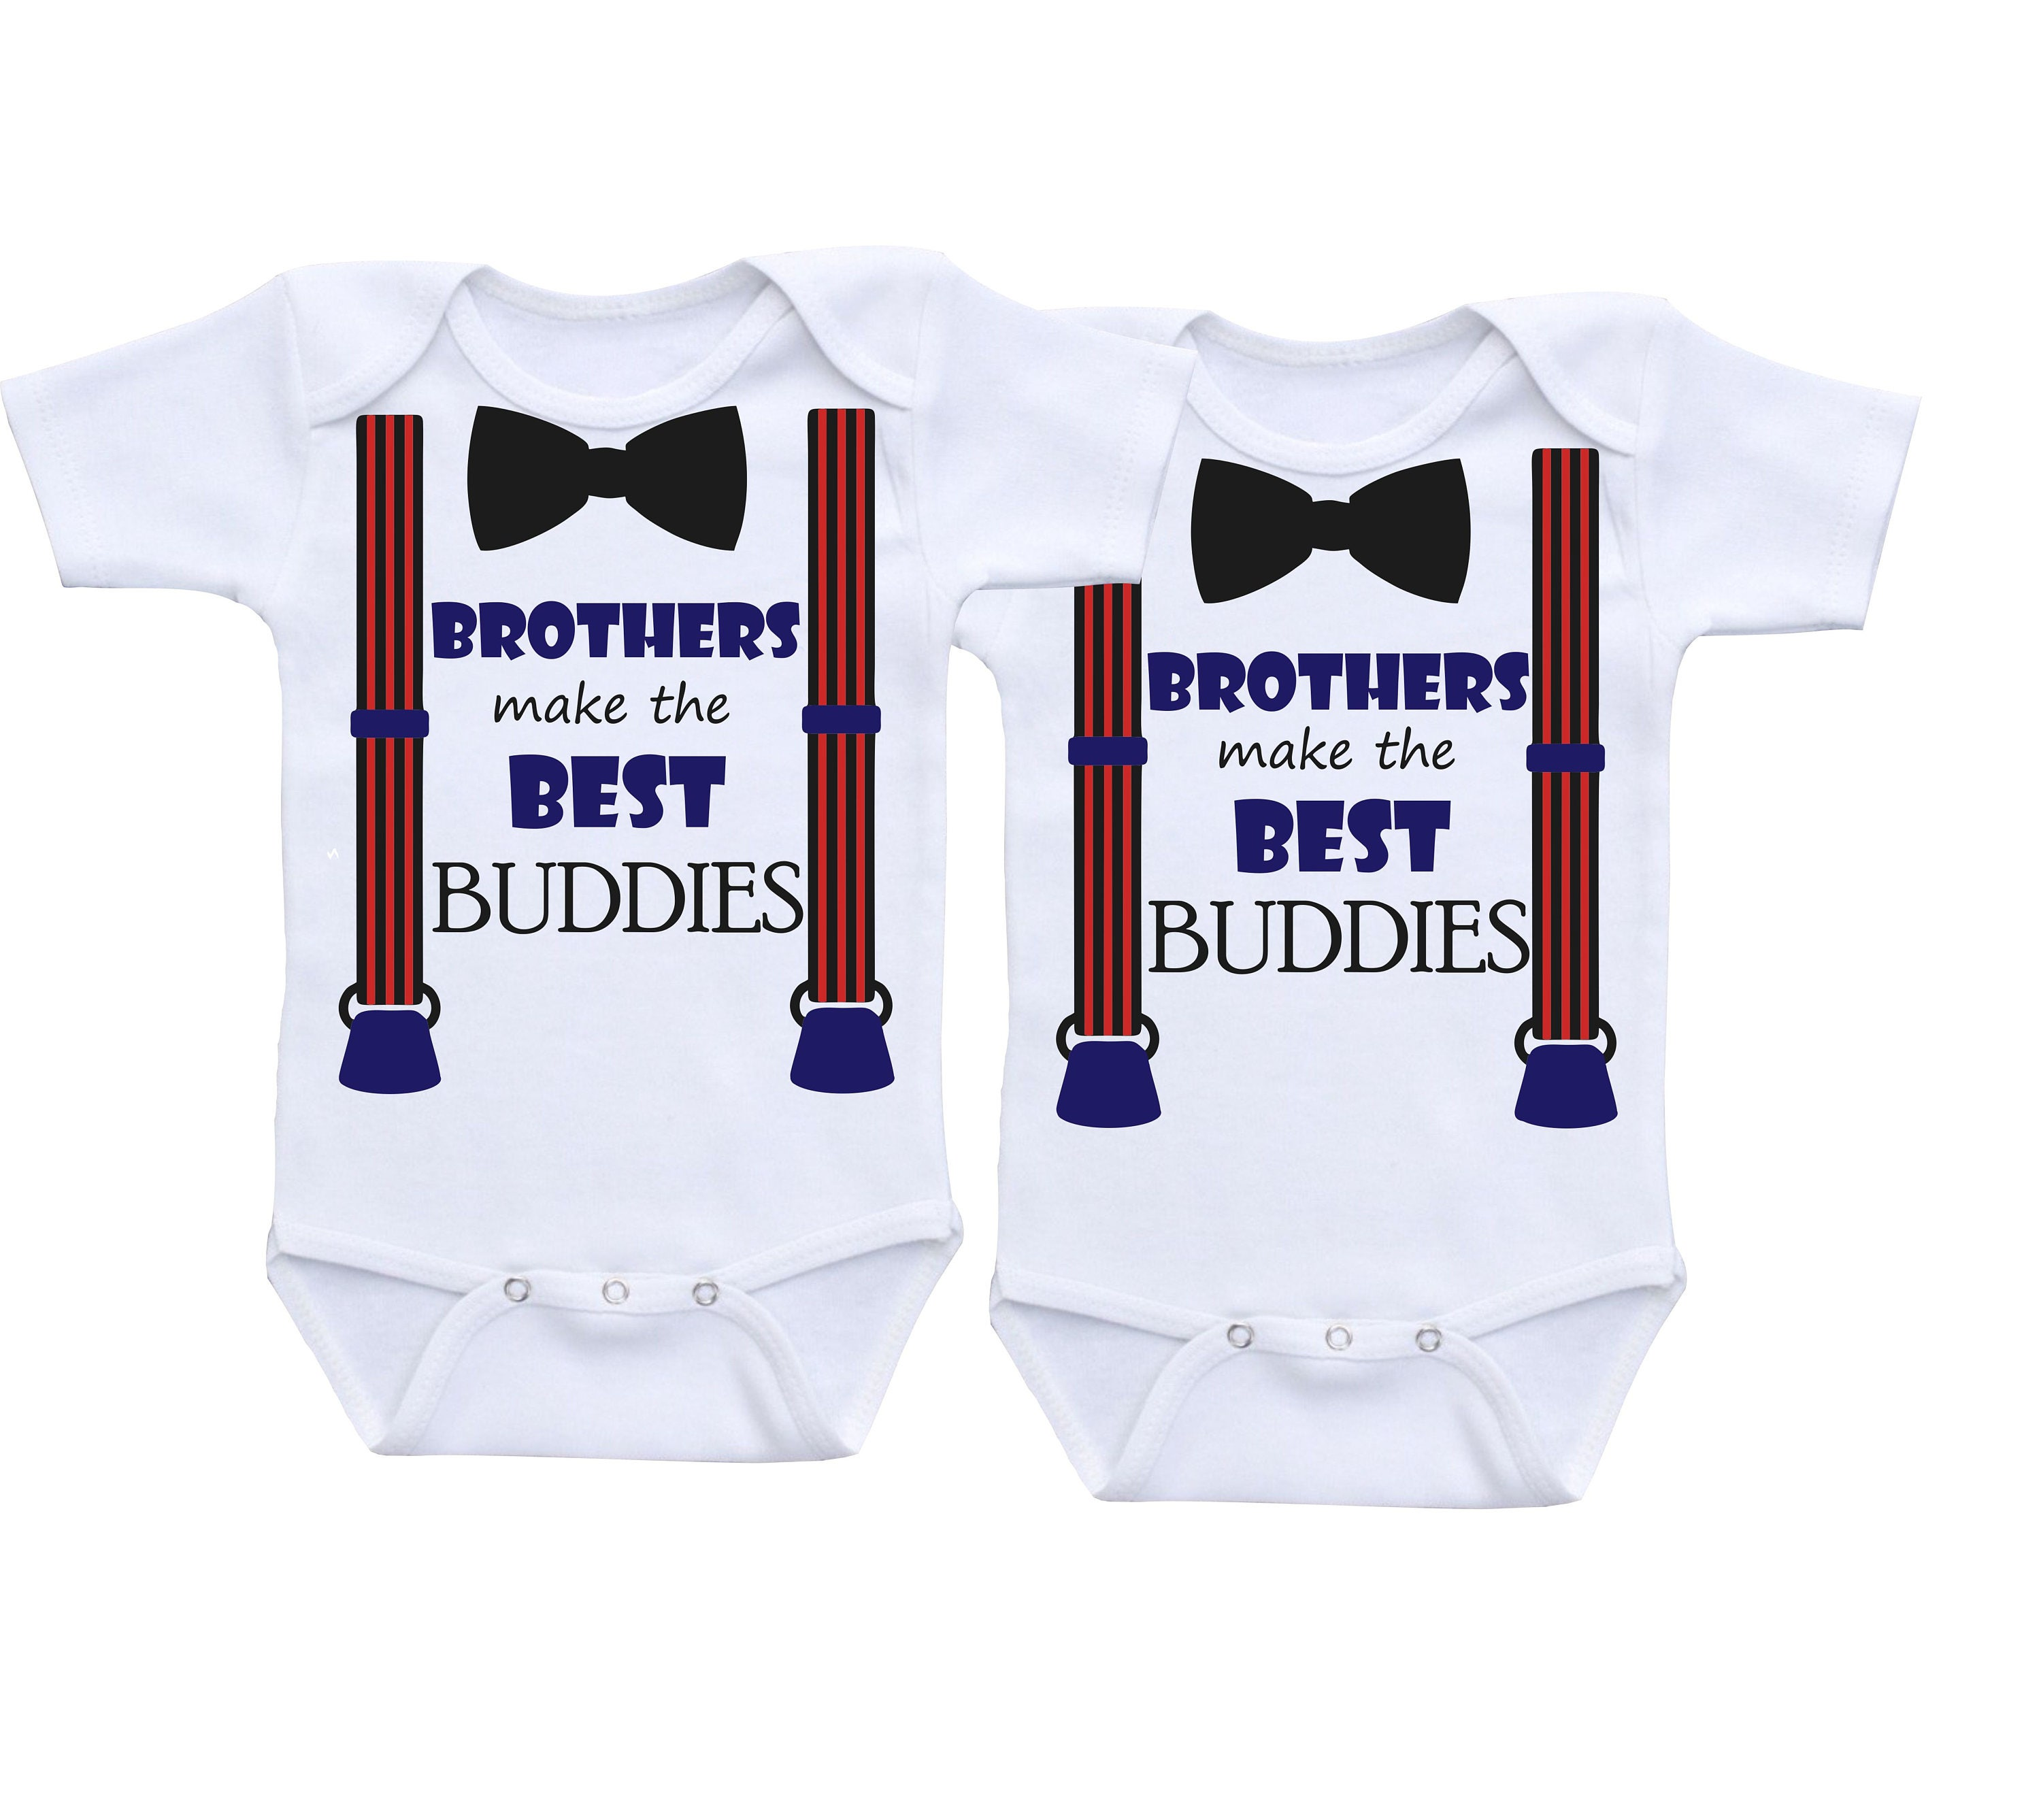 7efe562847d Twin onesies twin baby gift twins onesies twin boy outfits etsy jpg  3000x2675 Twin baby boy